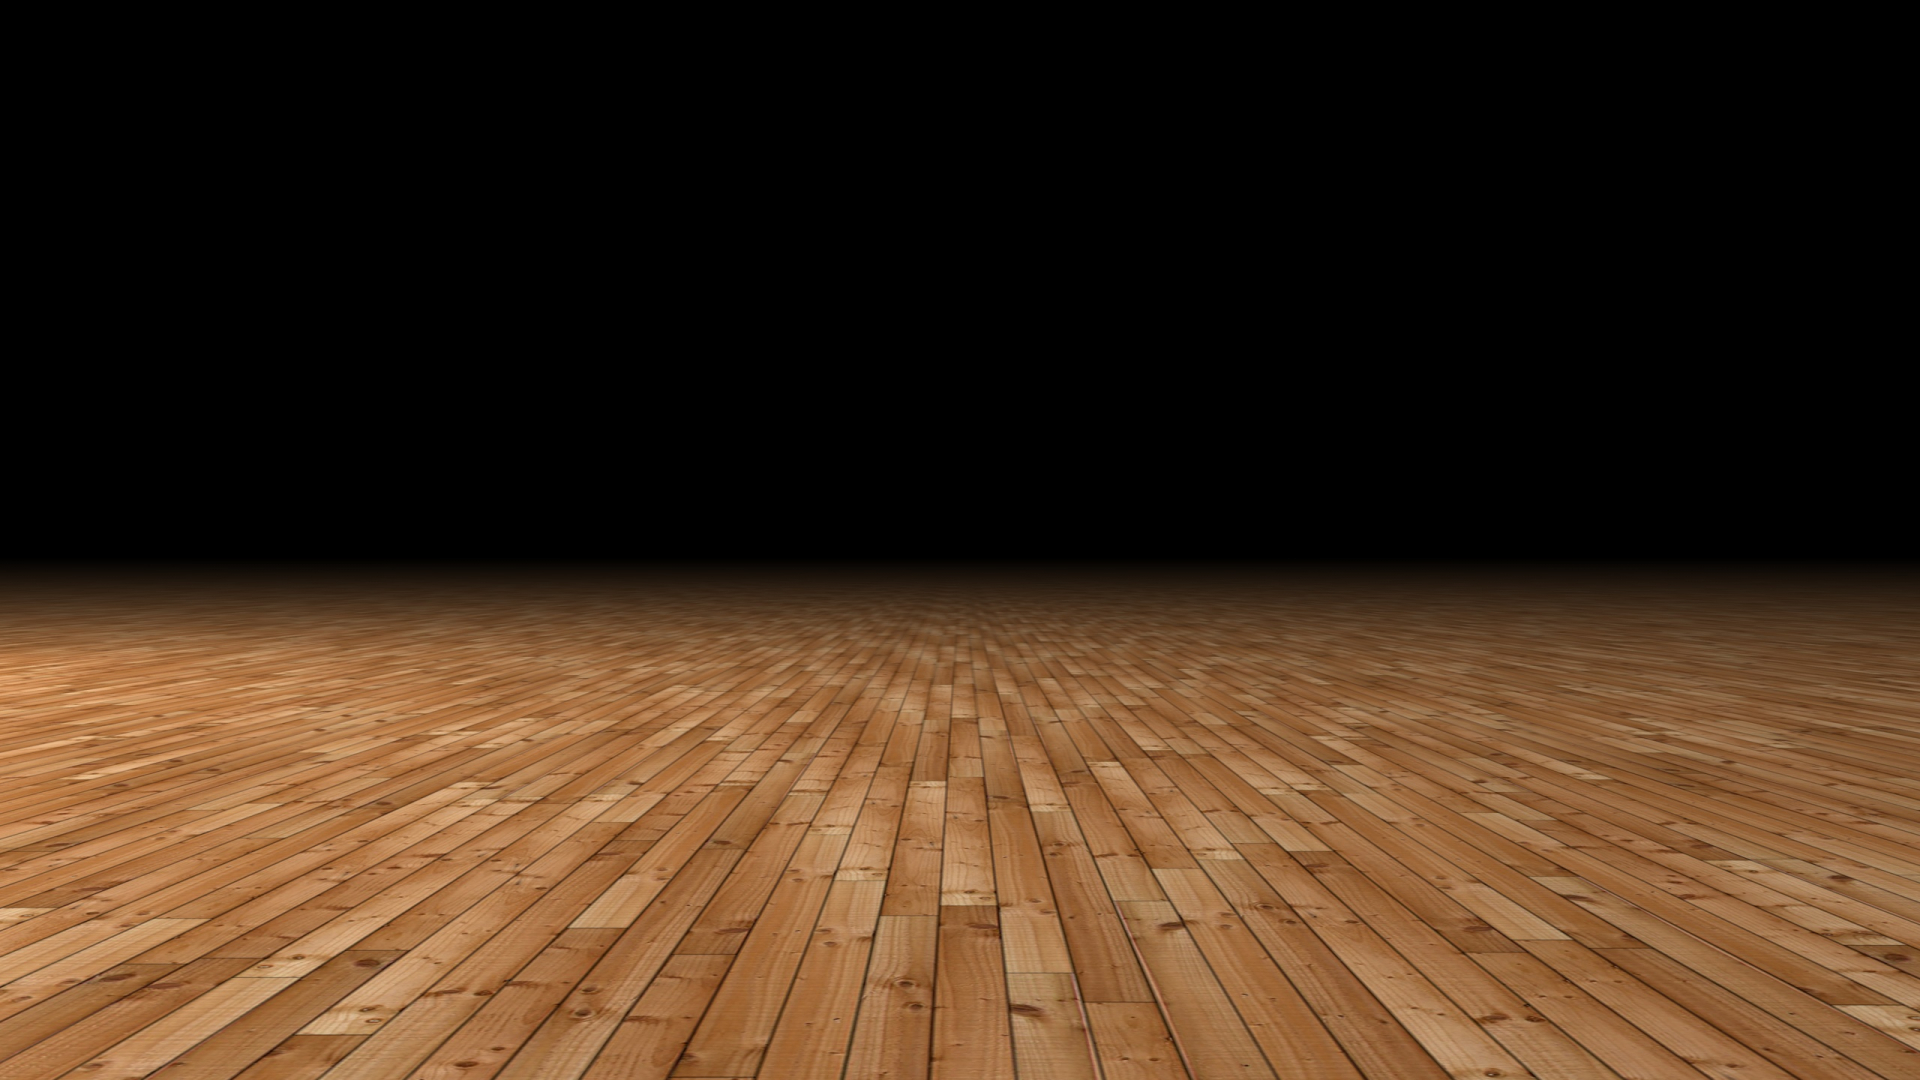 Free Download Basketball Court Wood Background 7267 Best